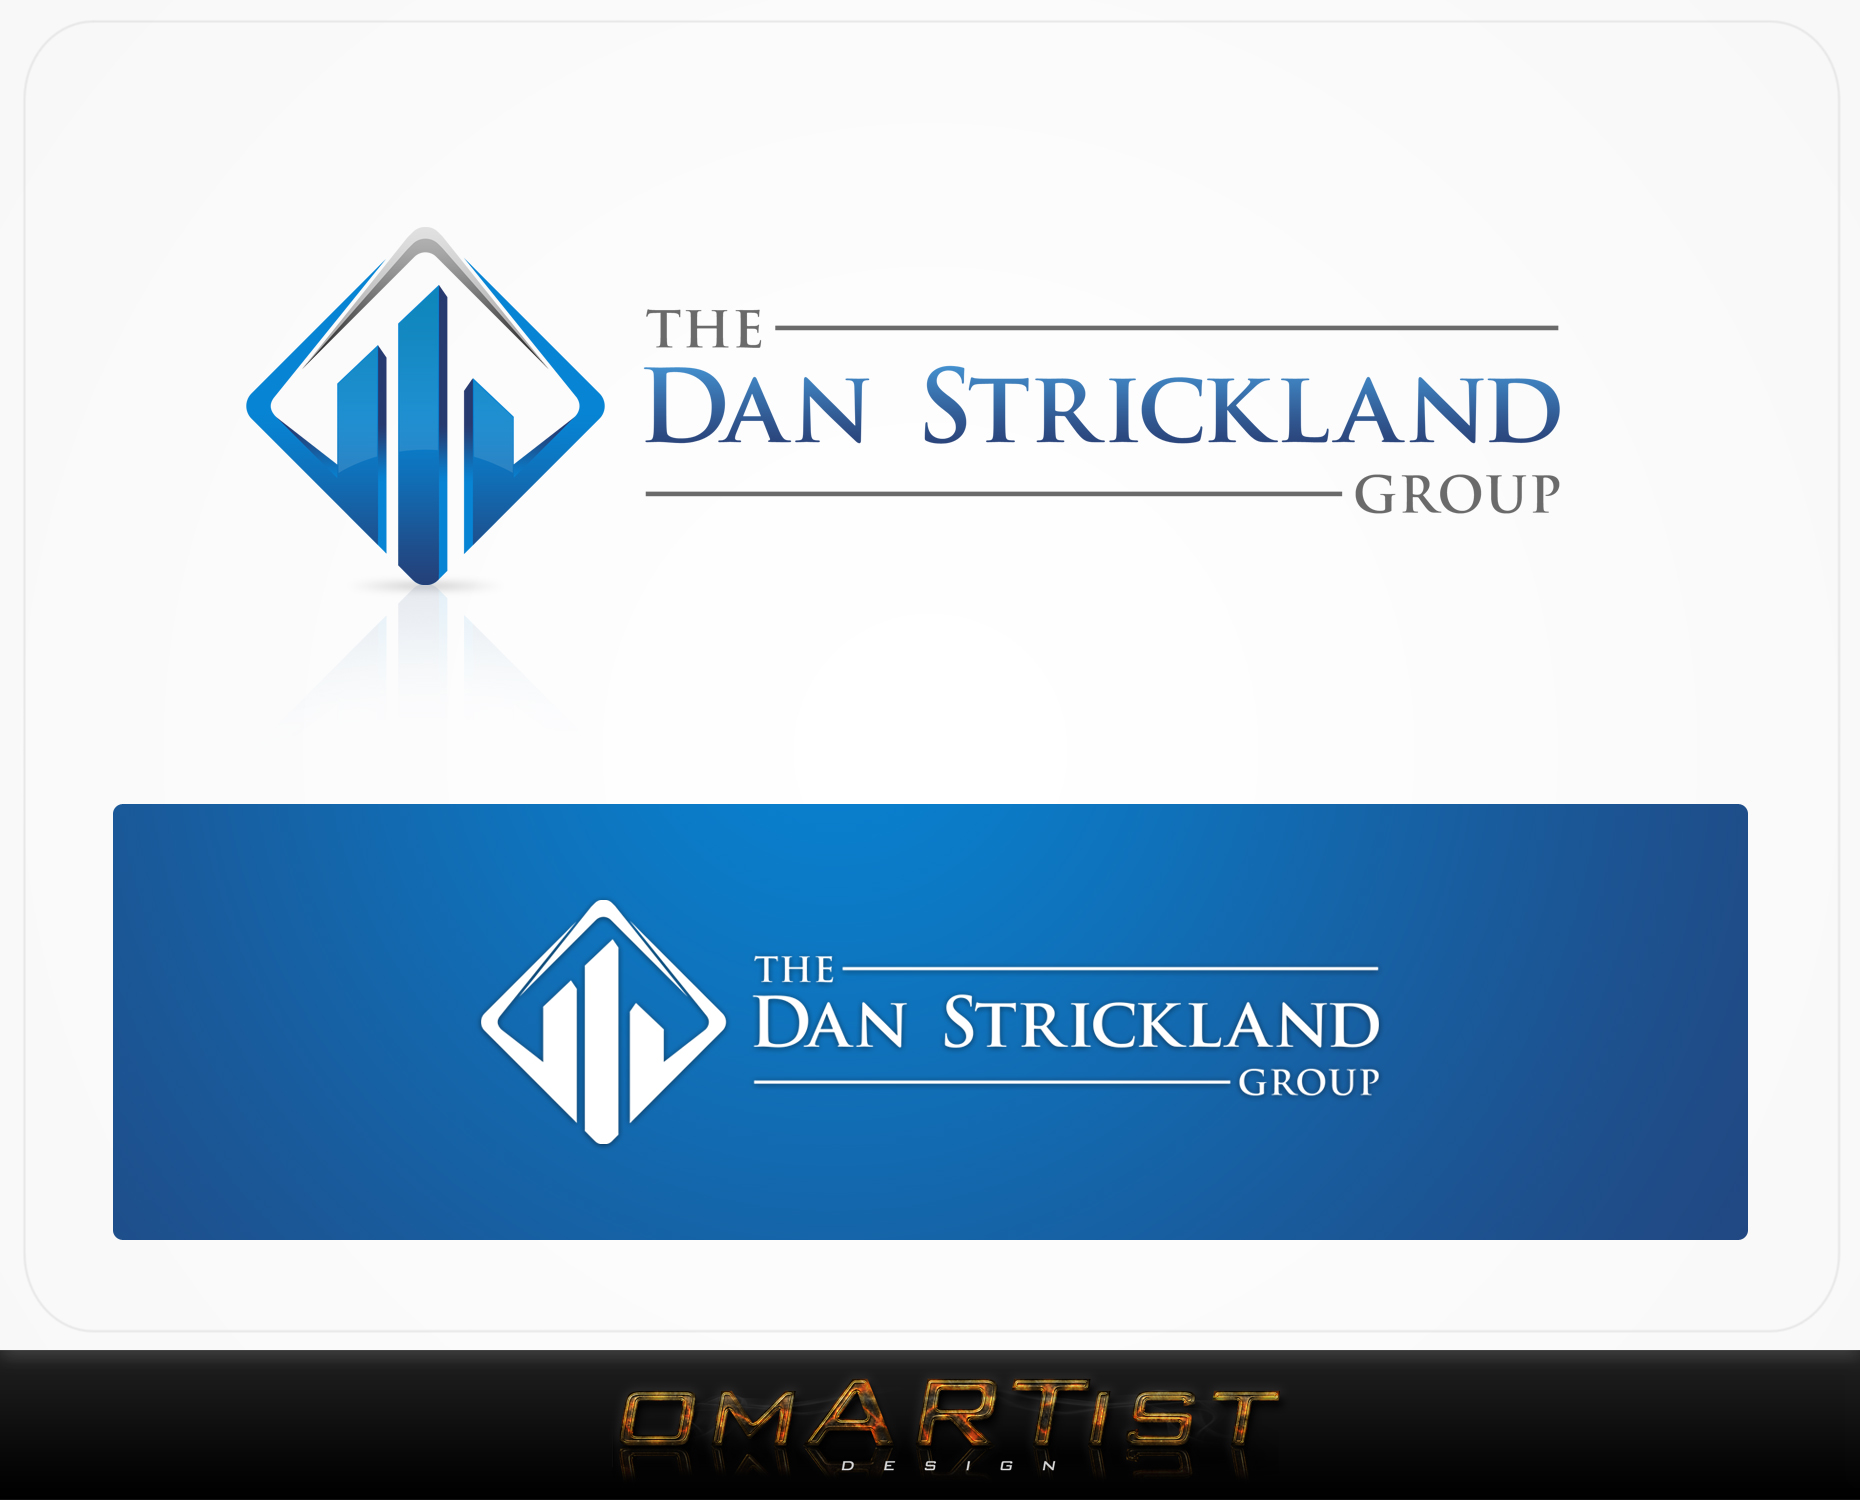 Logo Design by omARTist - Entry No. 331 in the Logo Design Contest Creative Logo Design for The Dan Strickland Group.